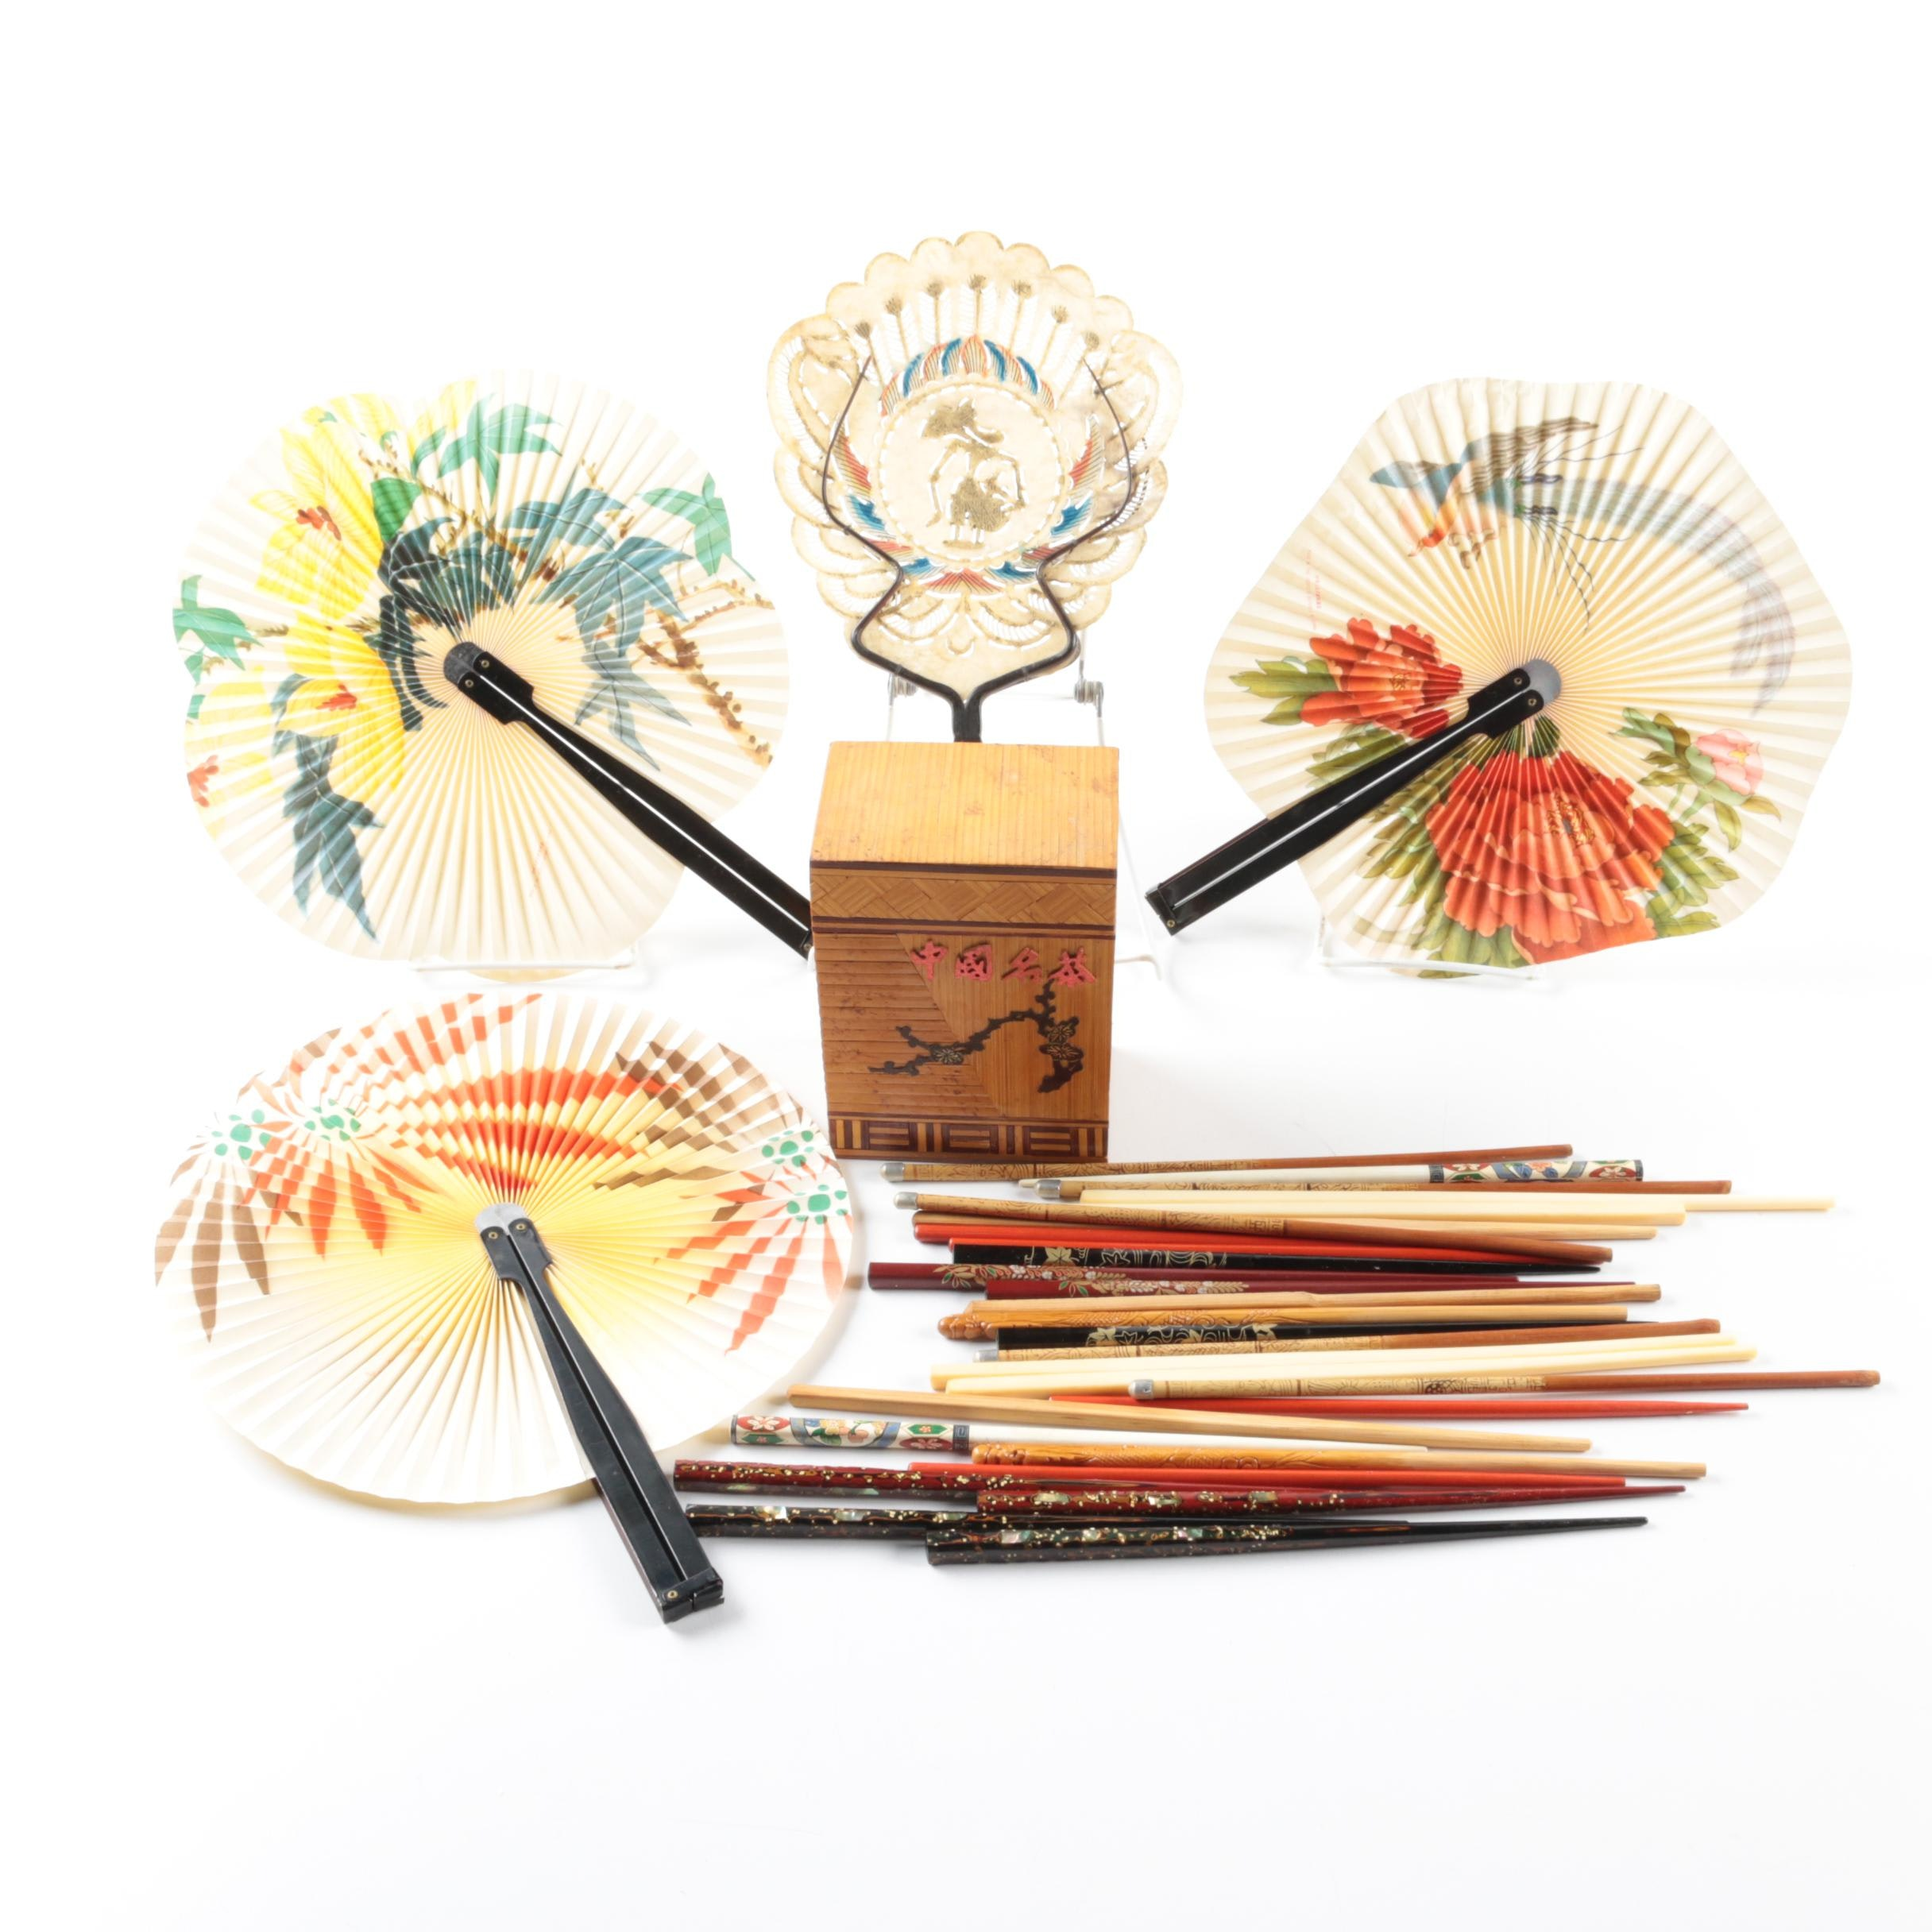 Bamboo Trinket Box with Chopsticks and Hand Fans